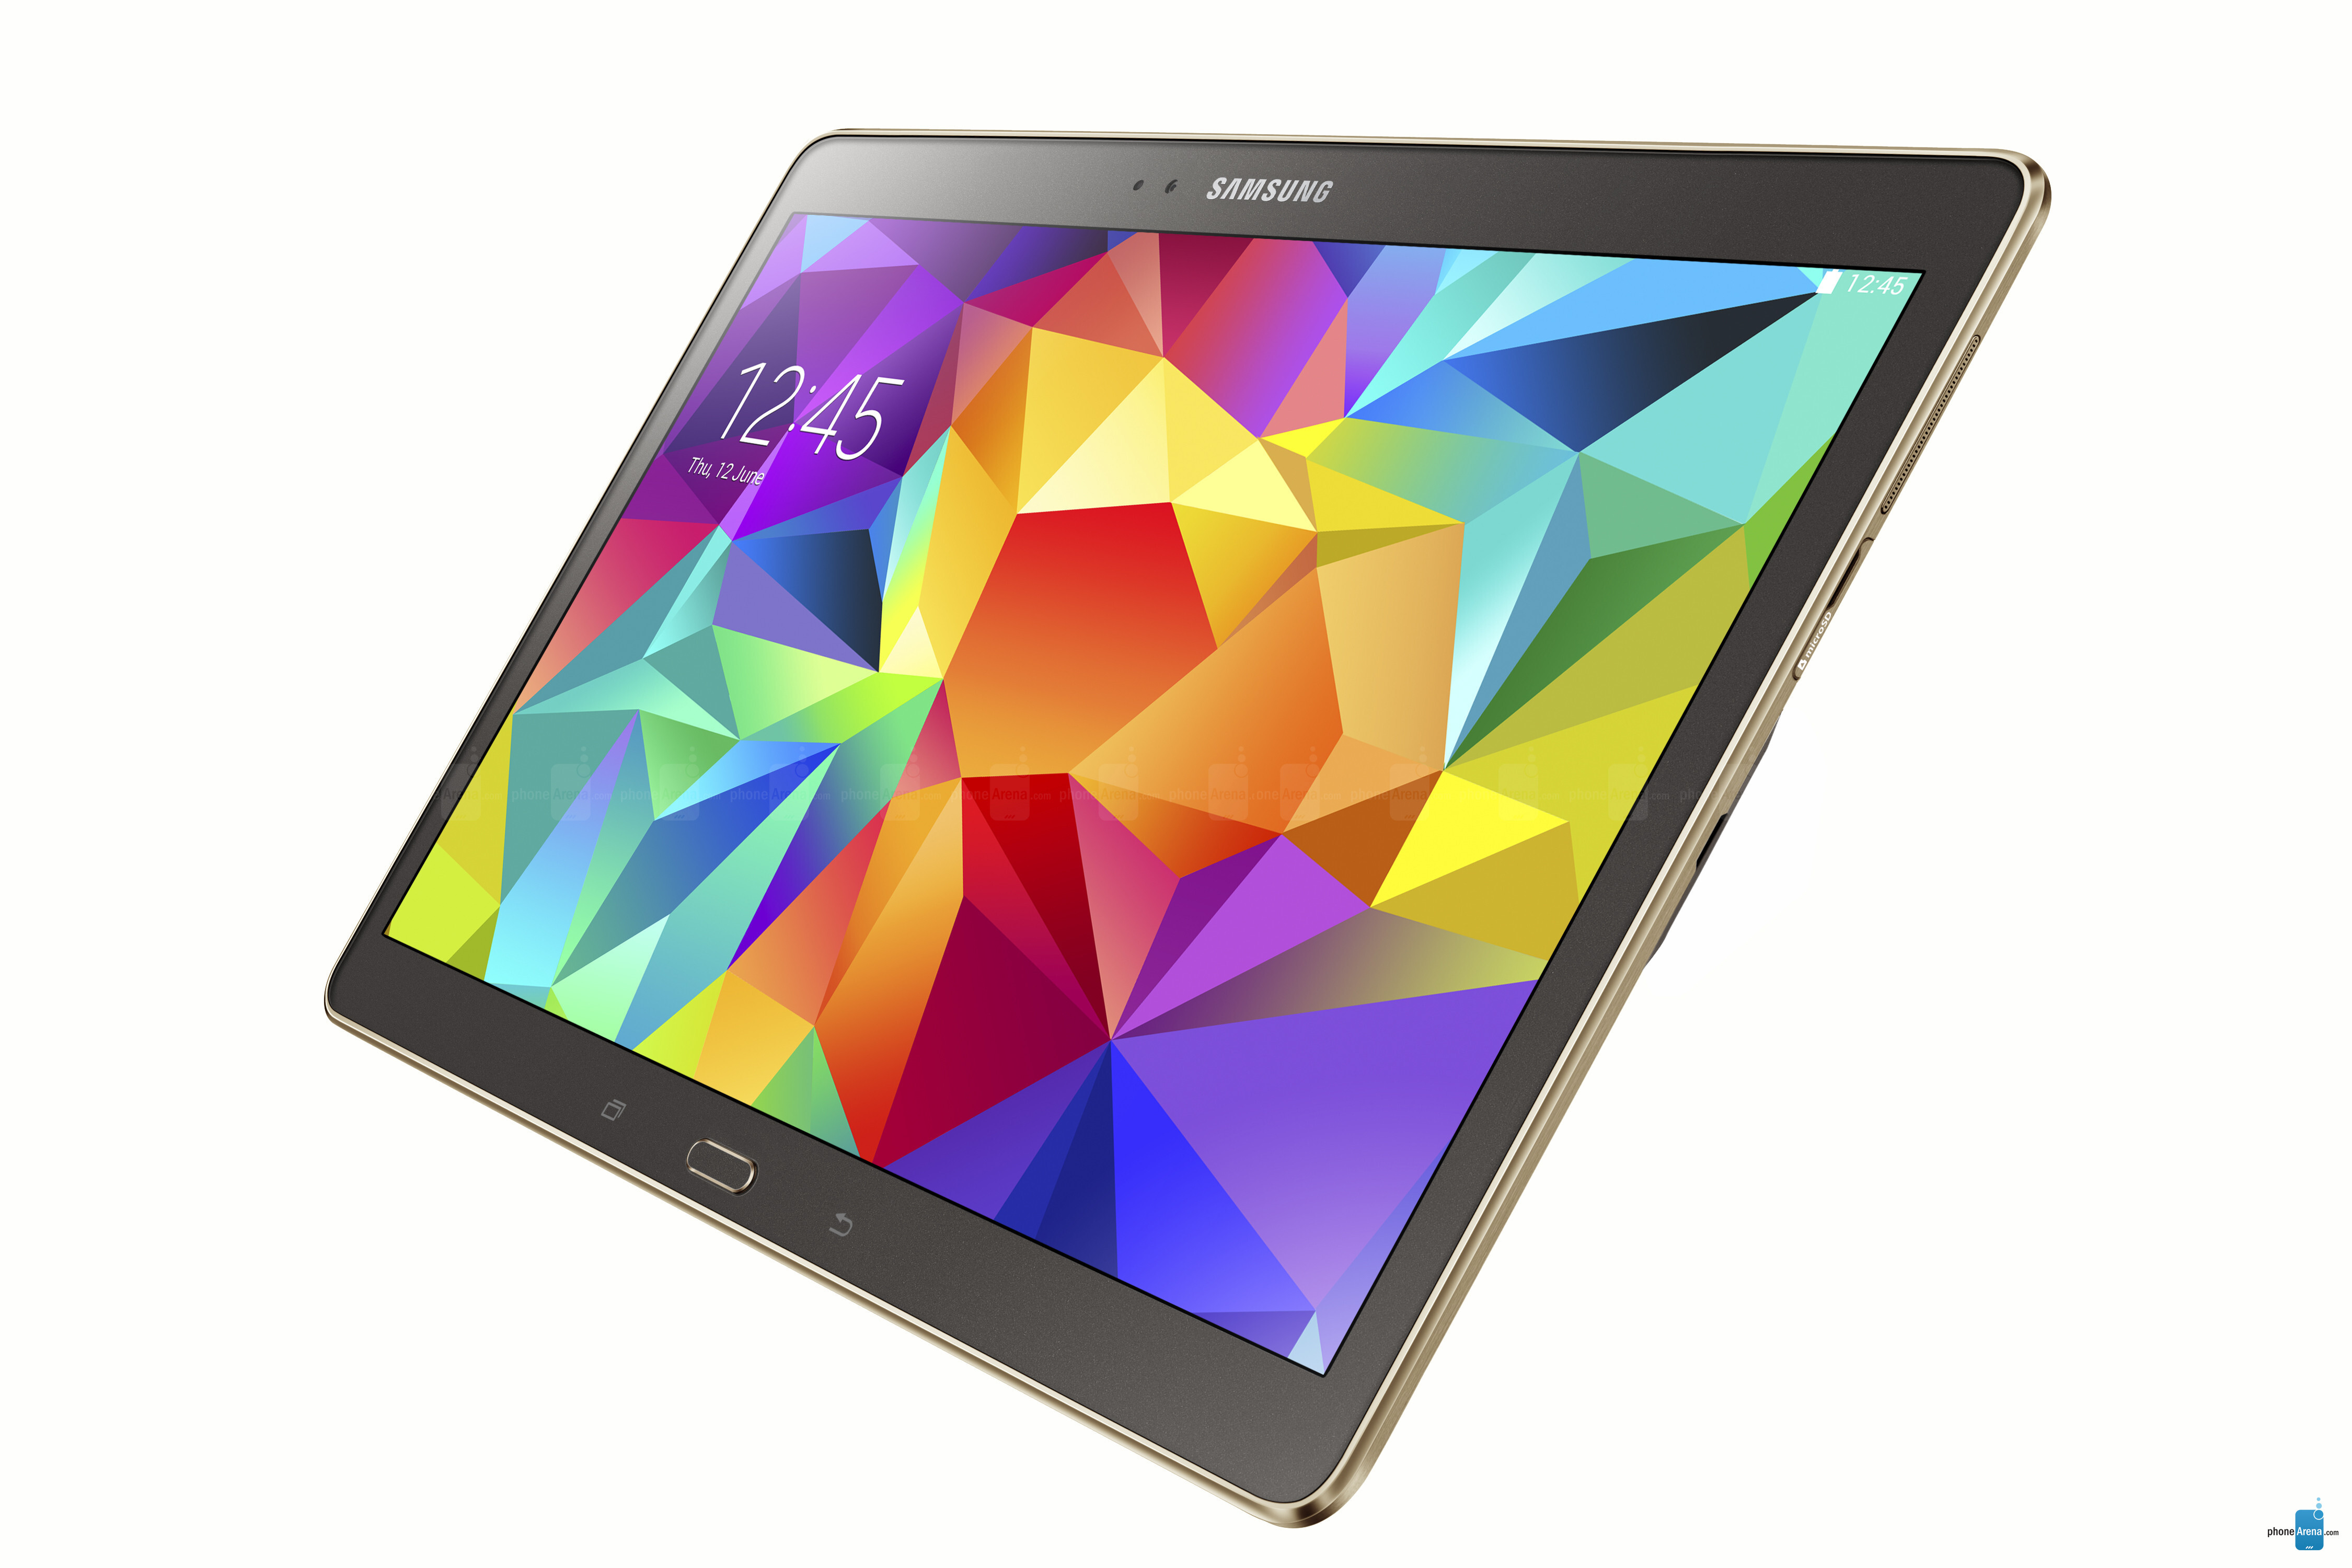 samsung tab a 10.1 user guide